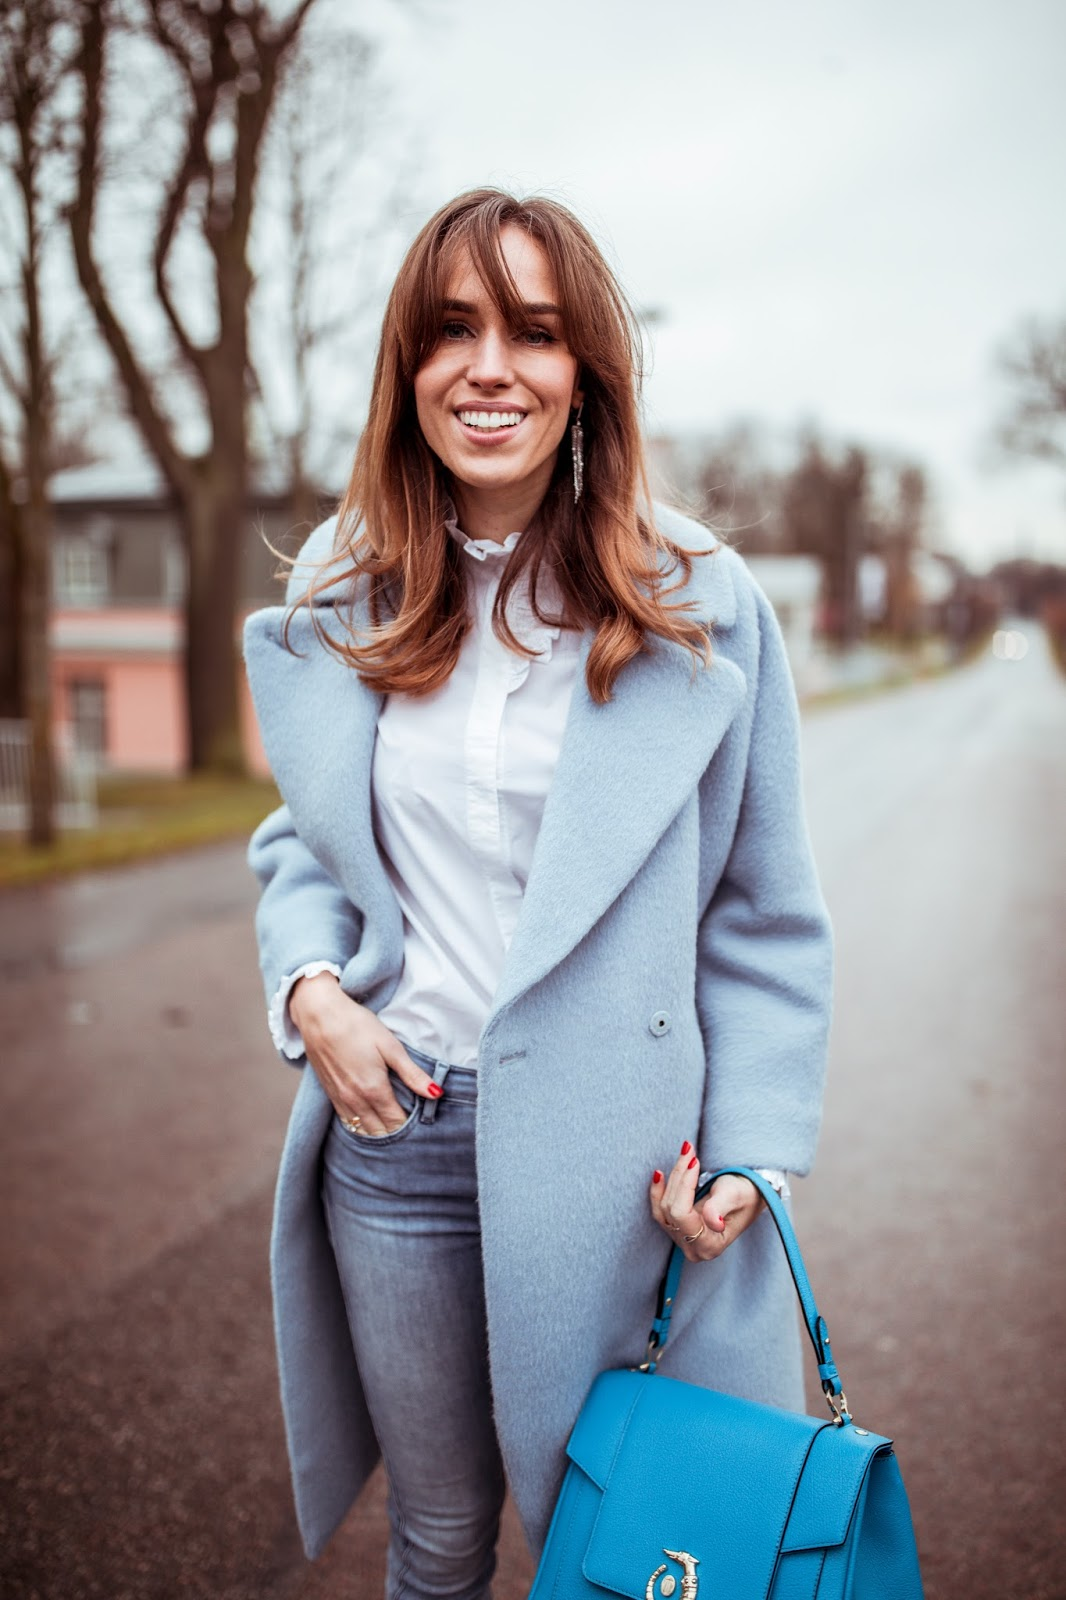 blue max mara cashmere coat outfit